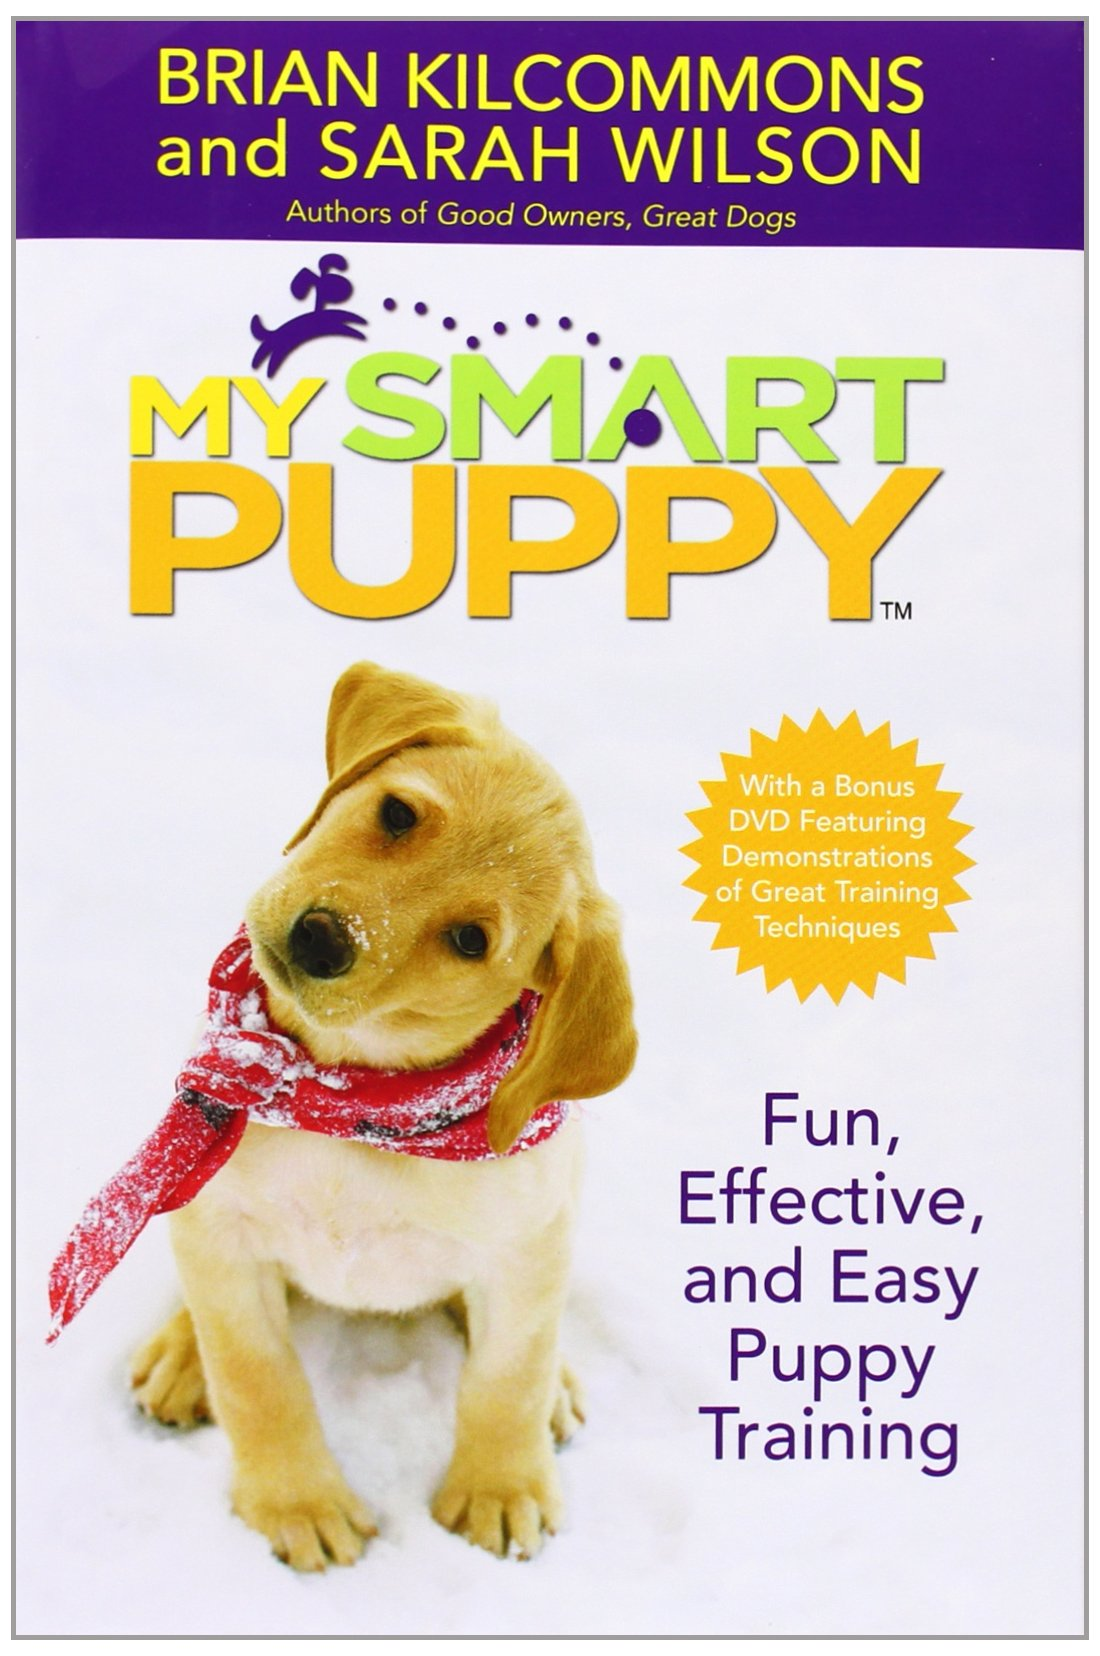 My Smart Puppy: Fun, Effective, and Easy Puppy Training (Book & 60min DVD) by Kilcommons, Brian/ Wilson, Sarah